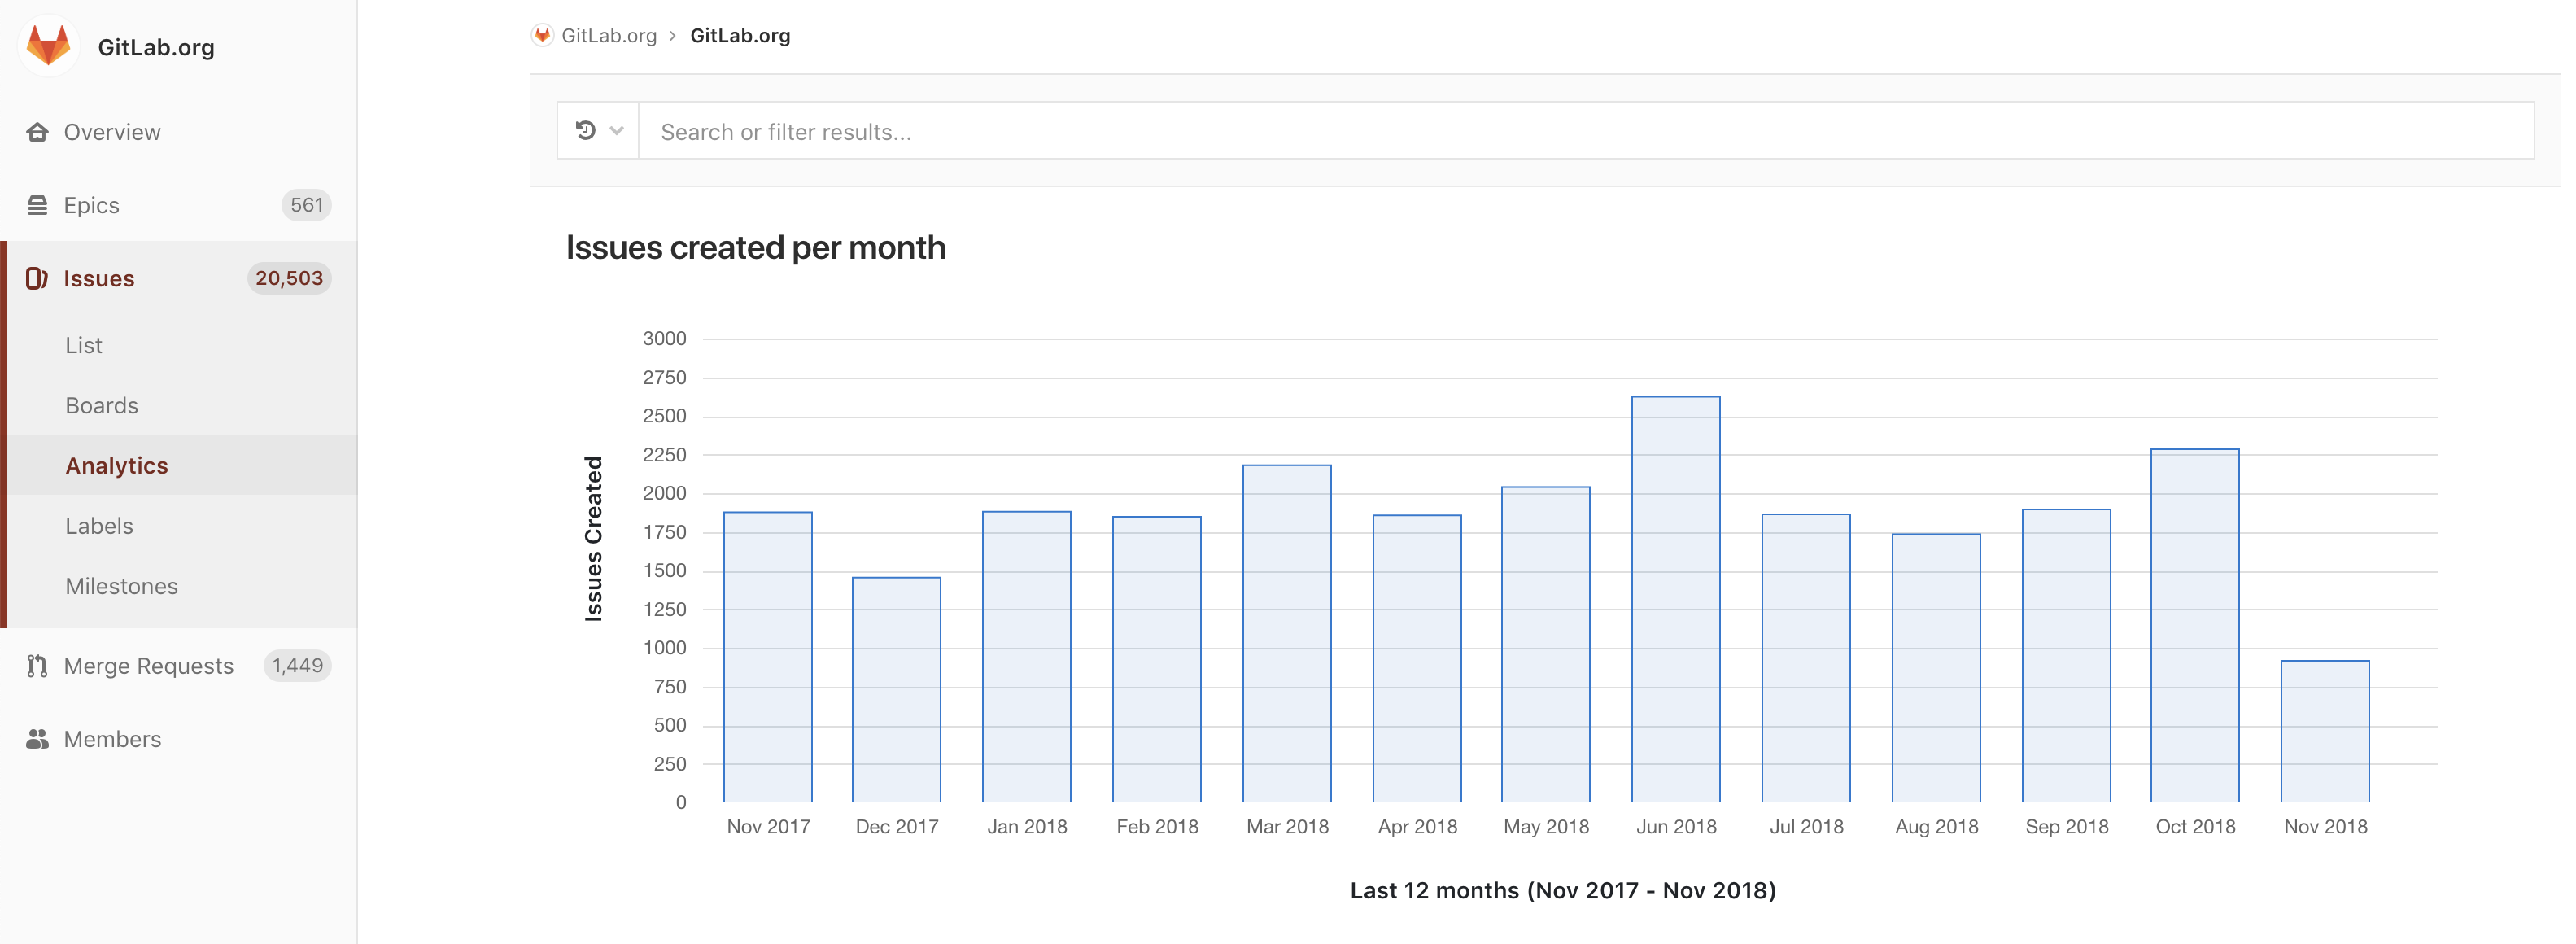 source/images/feature_page/screenshots/issue-analytics.png